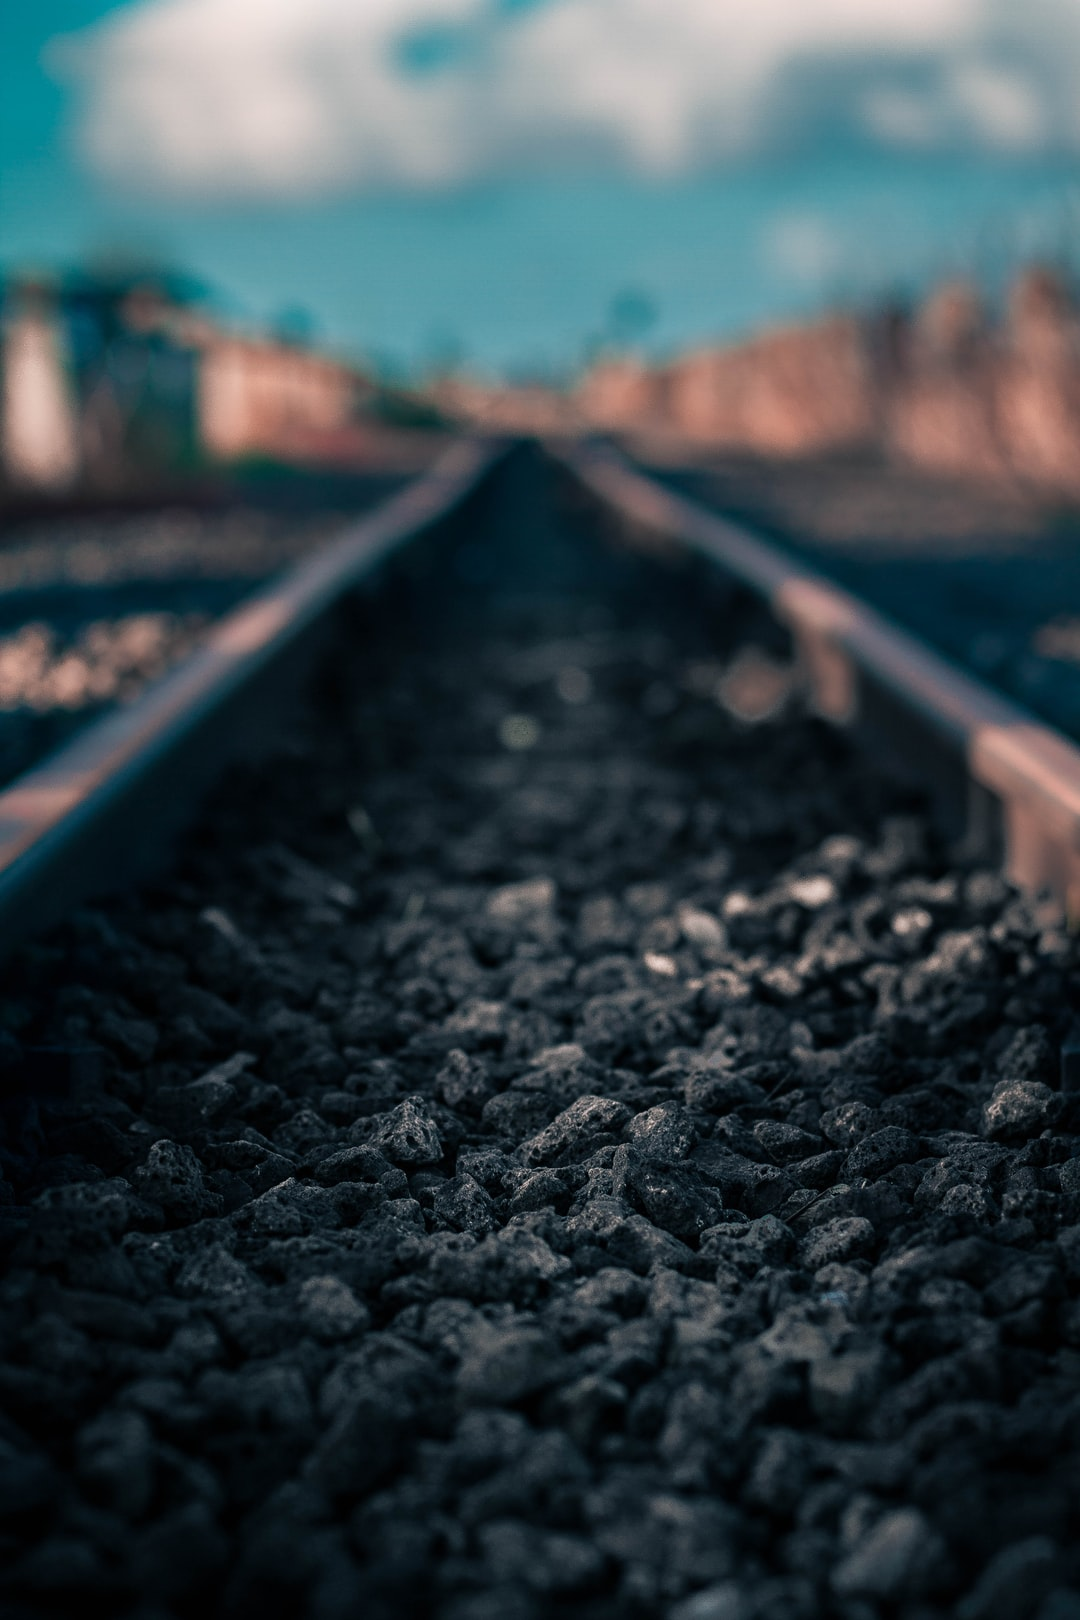 Super Cities №207—What We Can Learn from Railroads